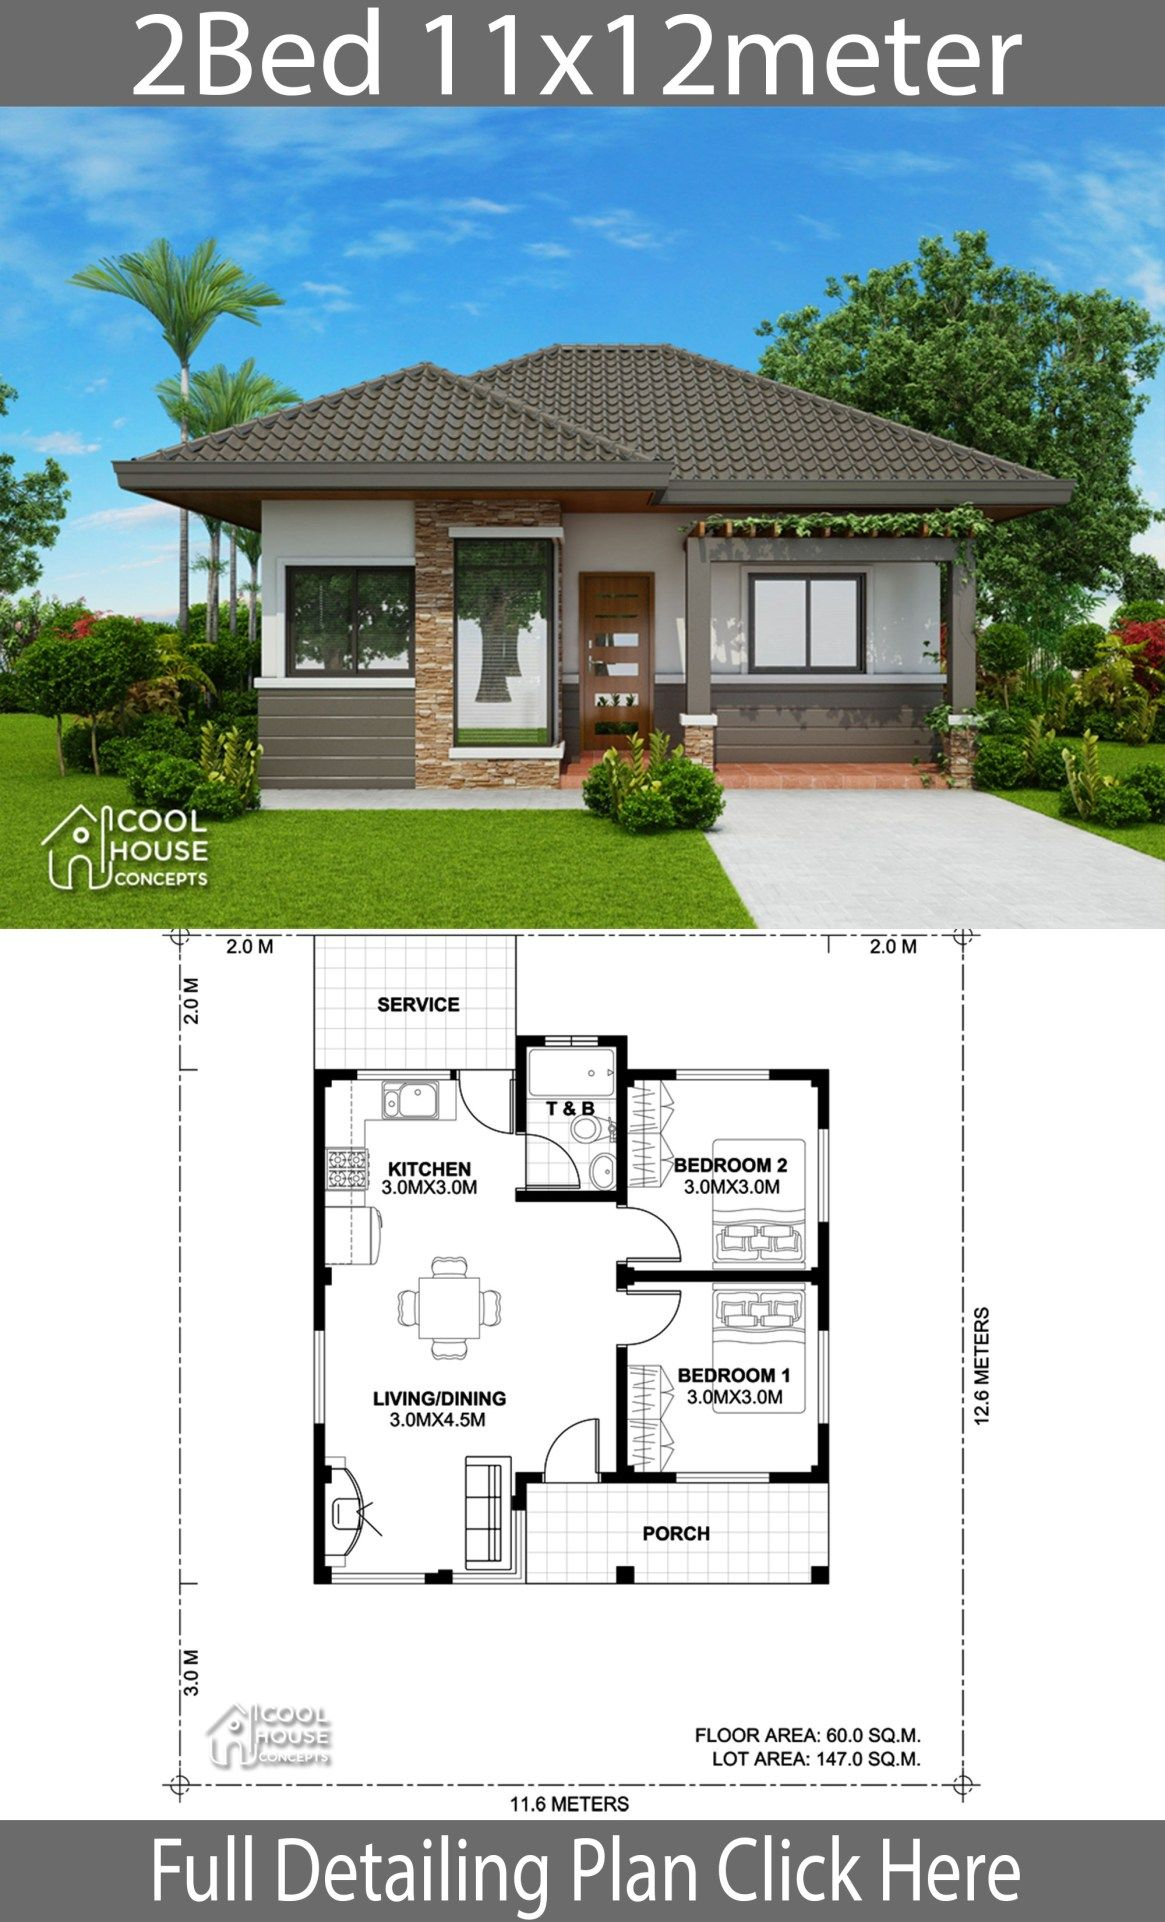 Home Design Plan 11x12m With 2 Bedrooms Home Design With Plansearch Bungalow House Plans Simple House Design House Design